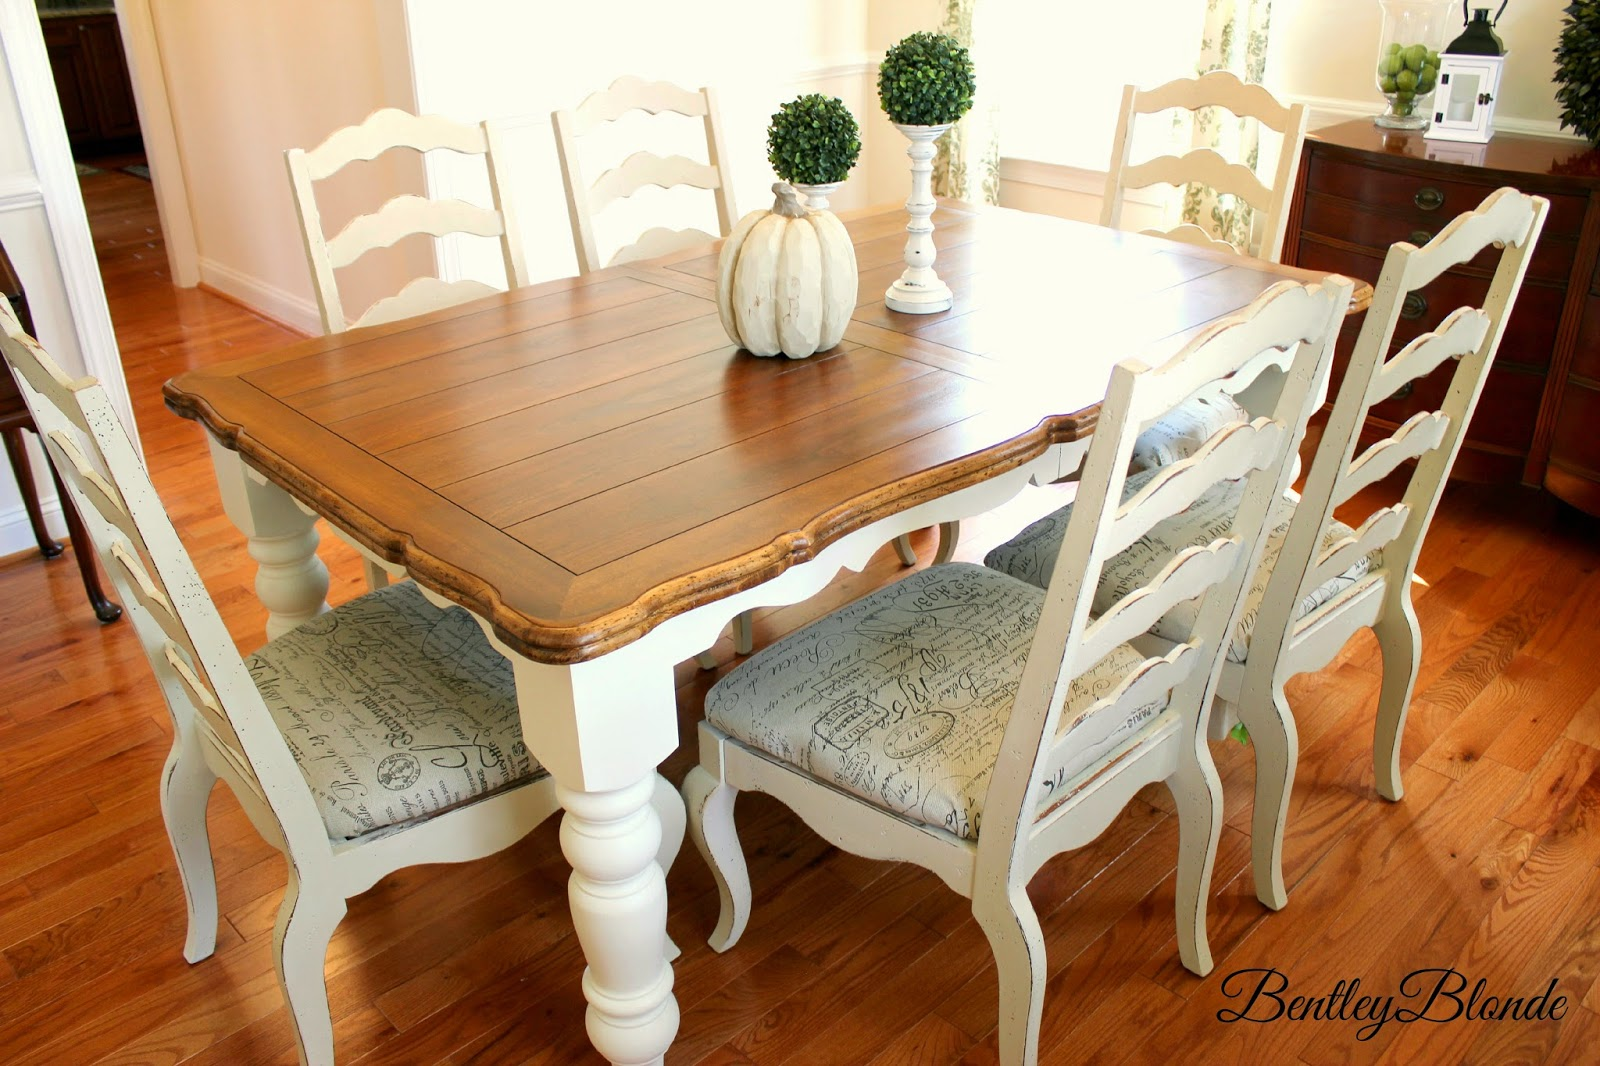 I Cant Wait To Sit Around This Table With Family Enjoying Many Delicious Meals And Memories Together In The Future